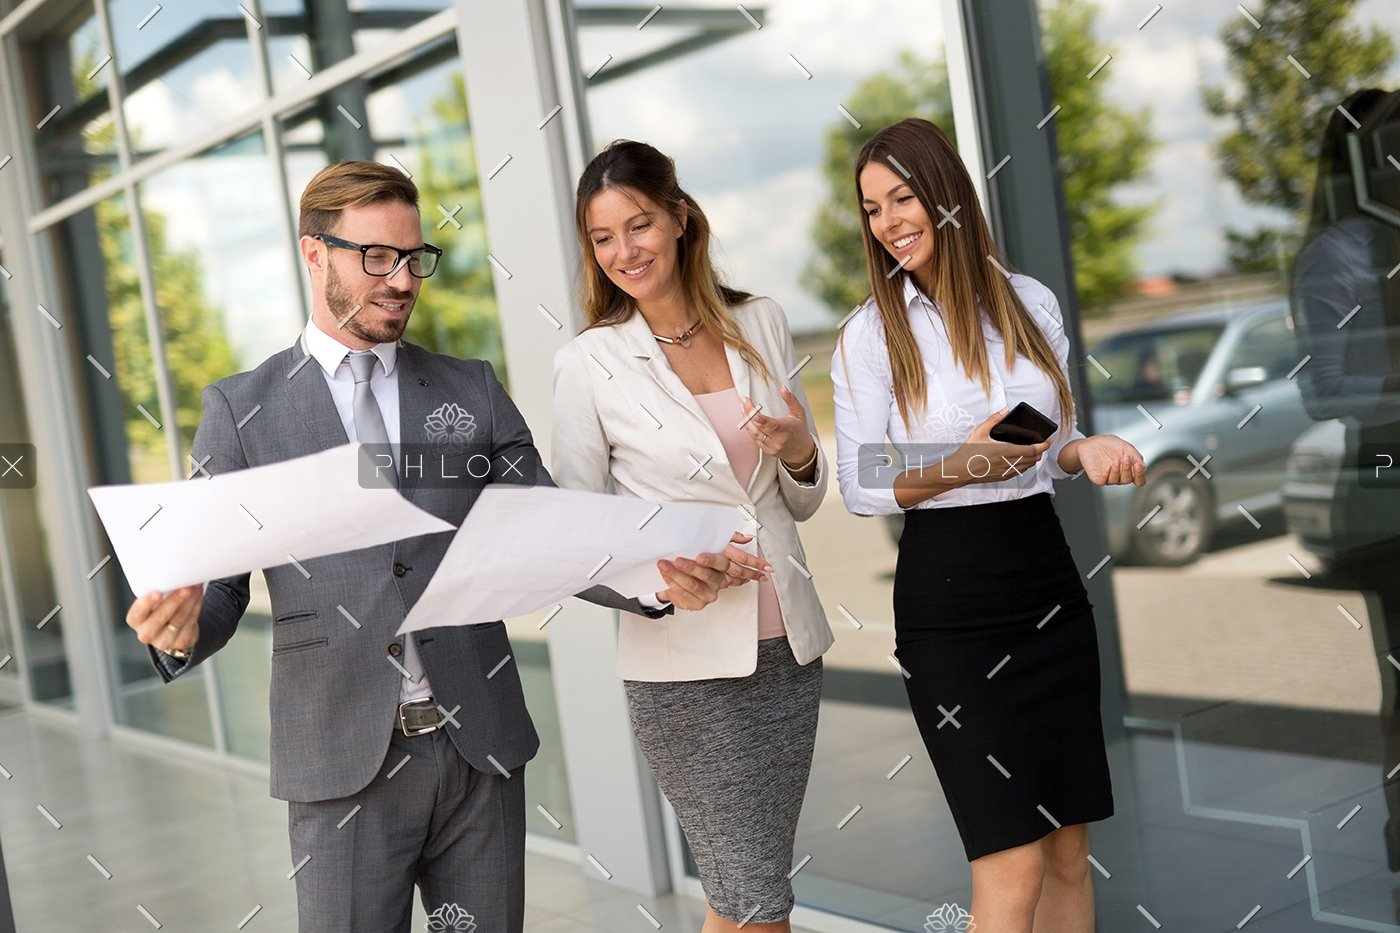 picture-of-business-people-discussing-in-their-P59UCWR